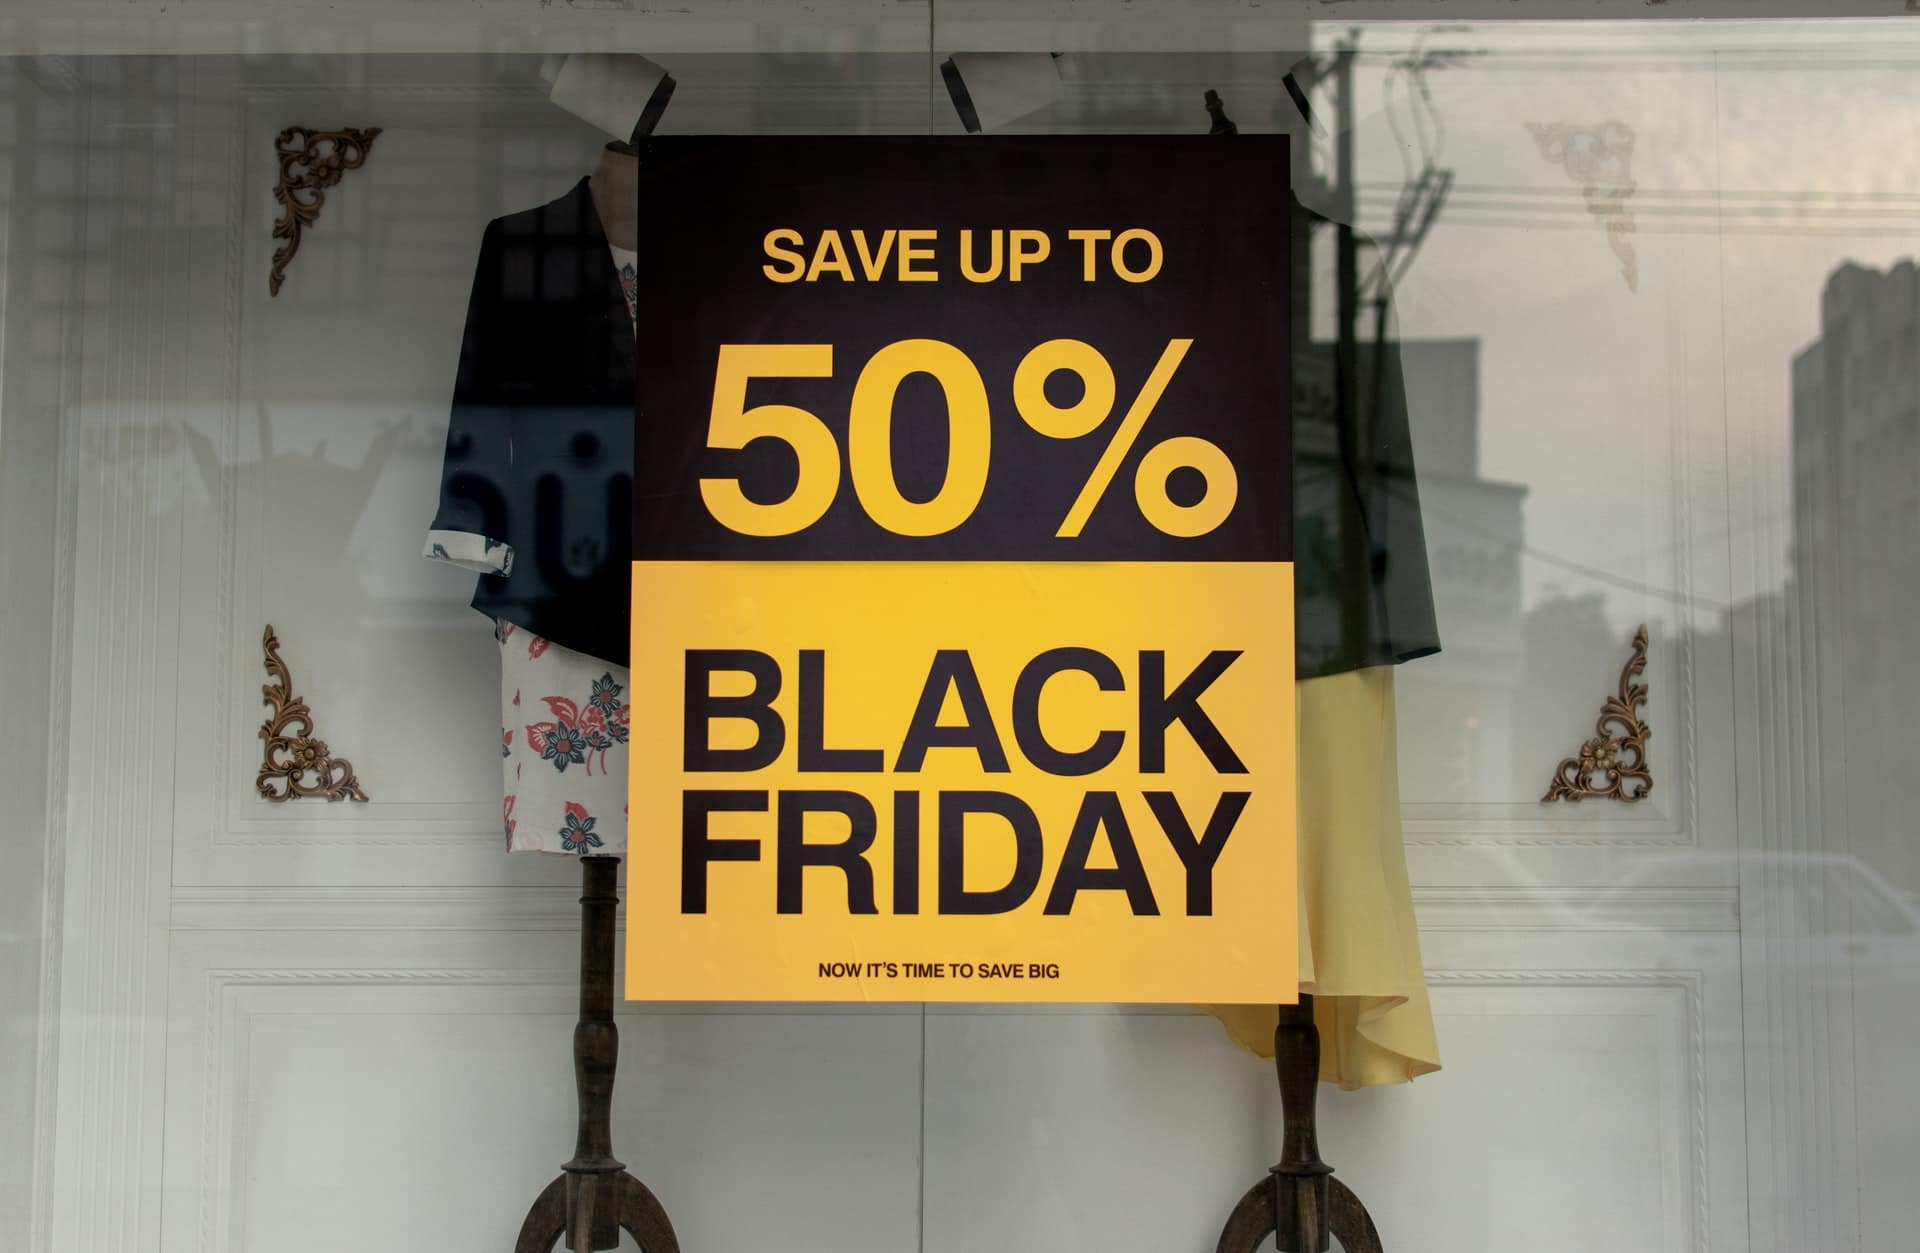 Estrategias de marketing para Black Friday y Cyber Monday 2020